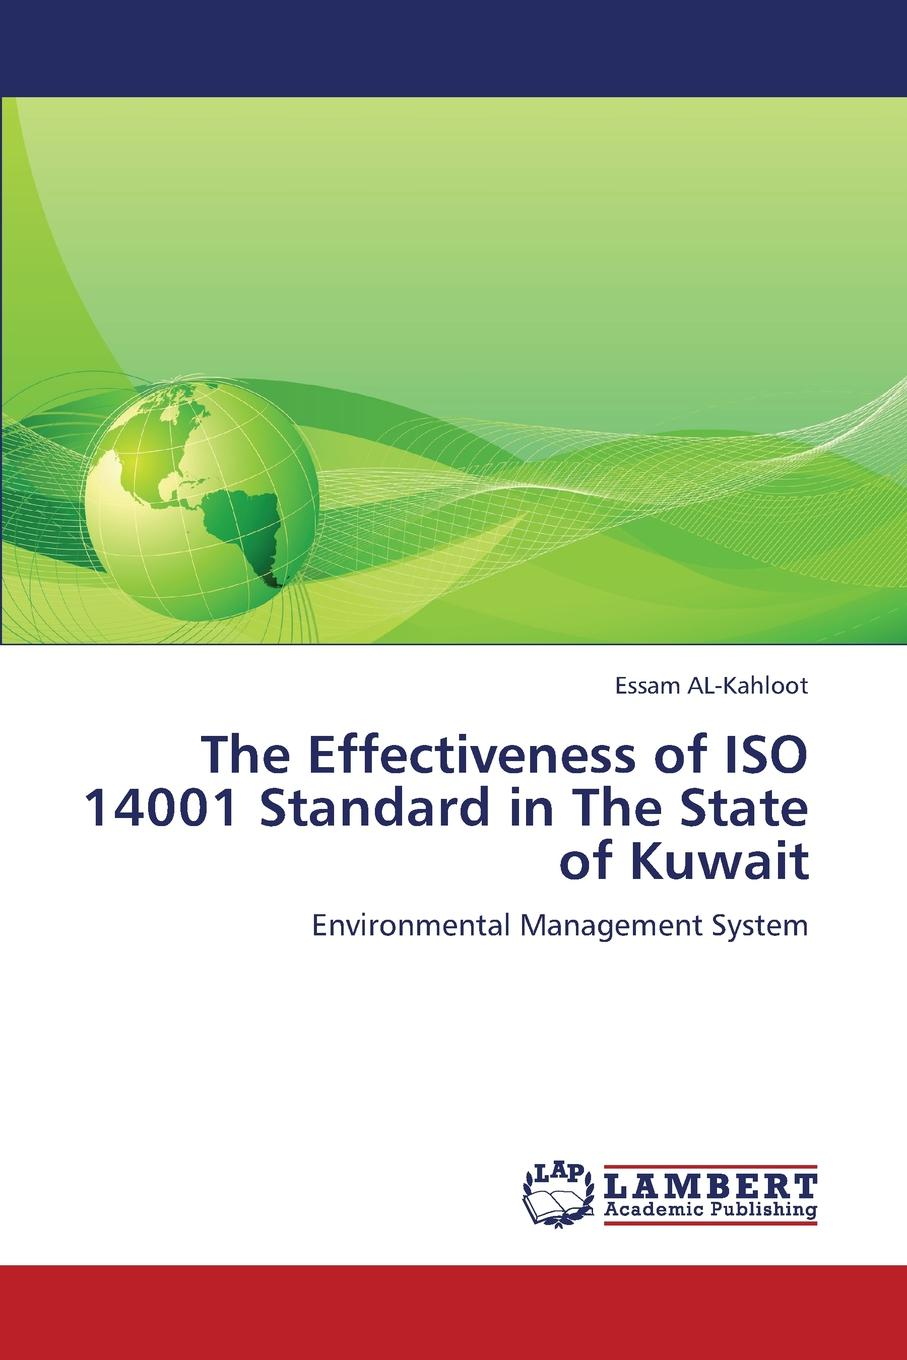 Al-Kahloot Essam The Effectiveness of ISO 14001 Standard in the State of Kuwait kuwait